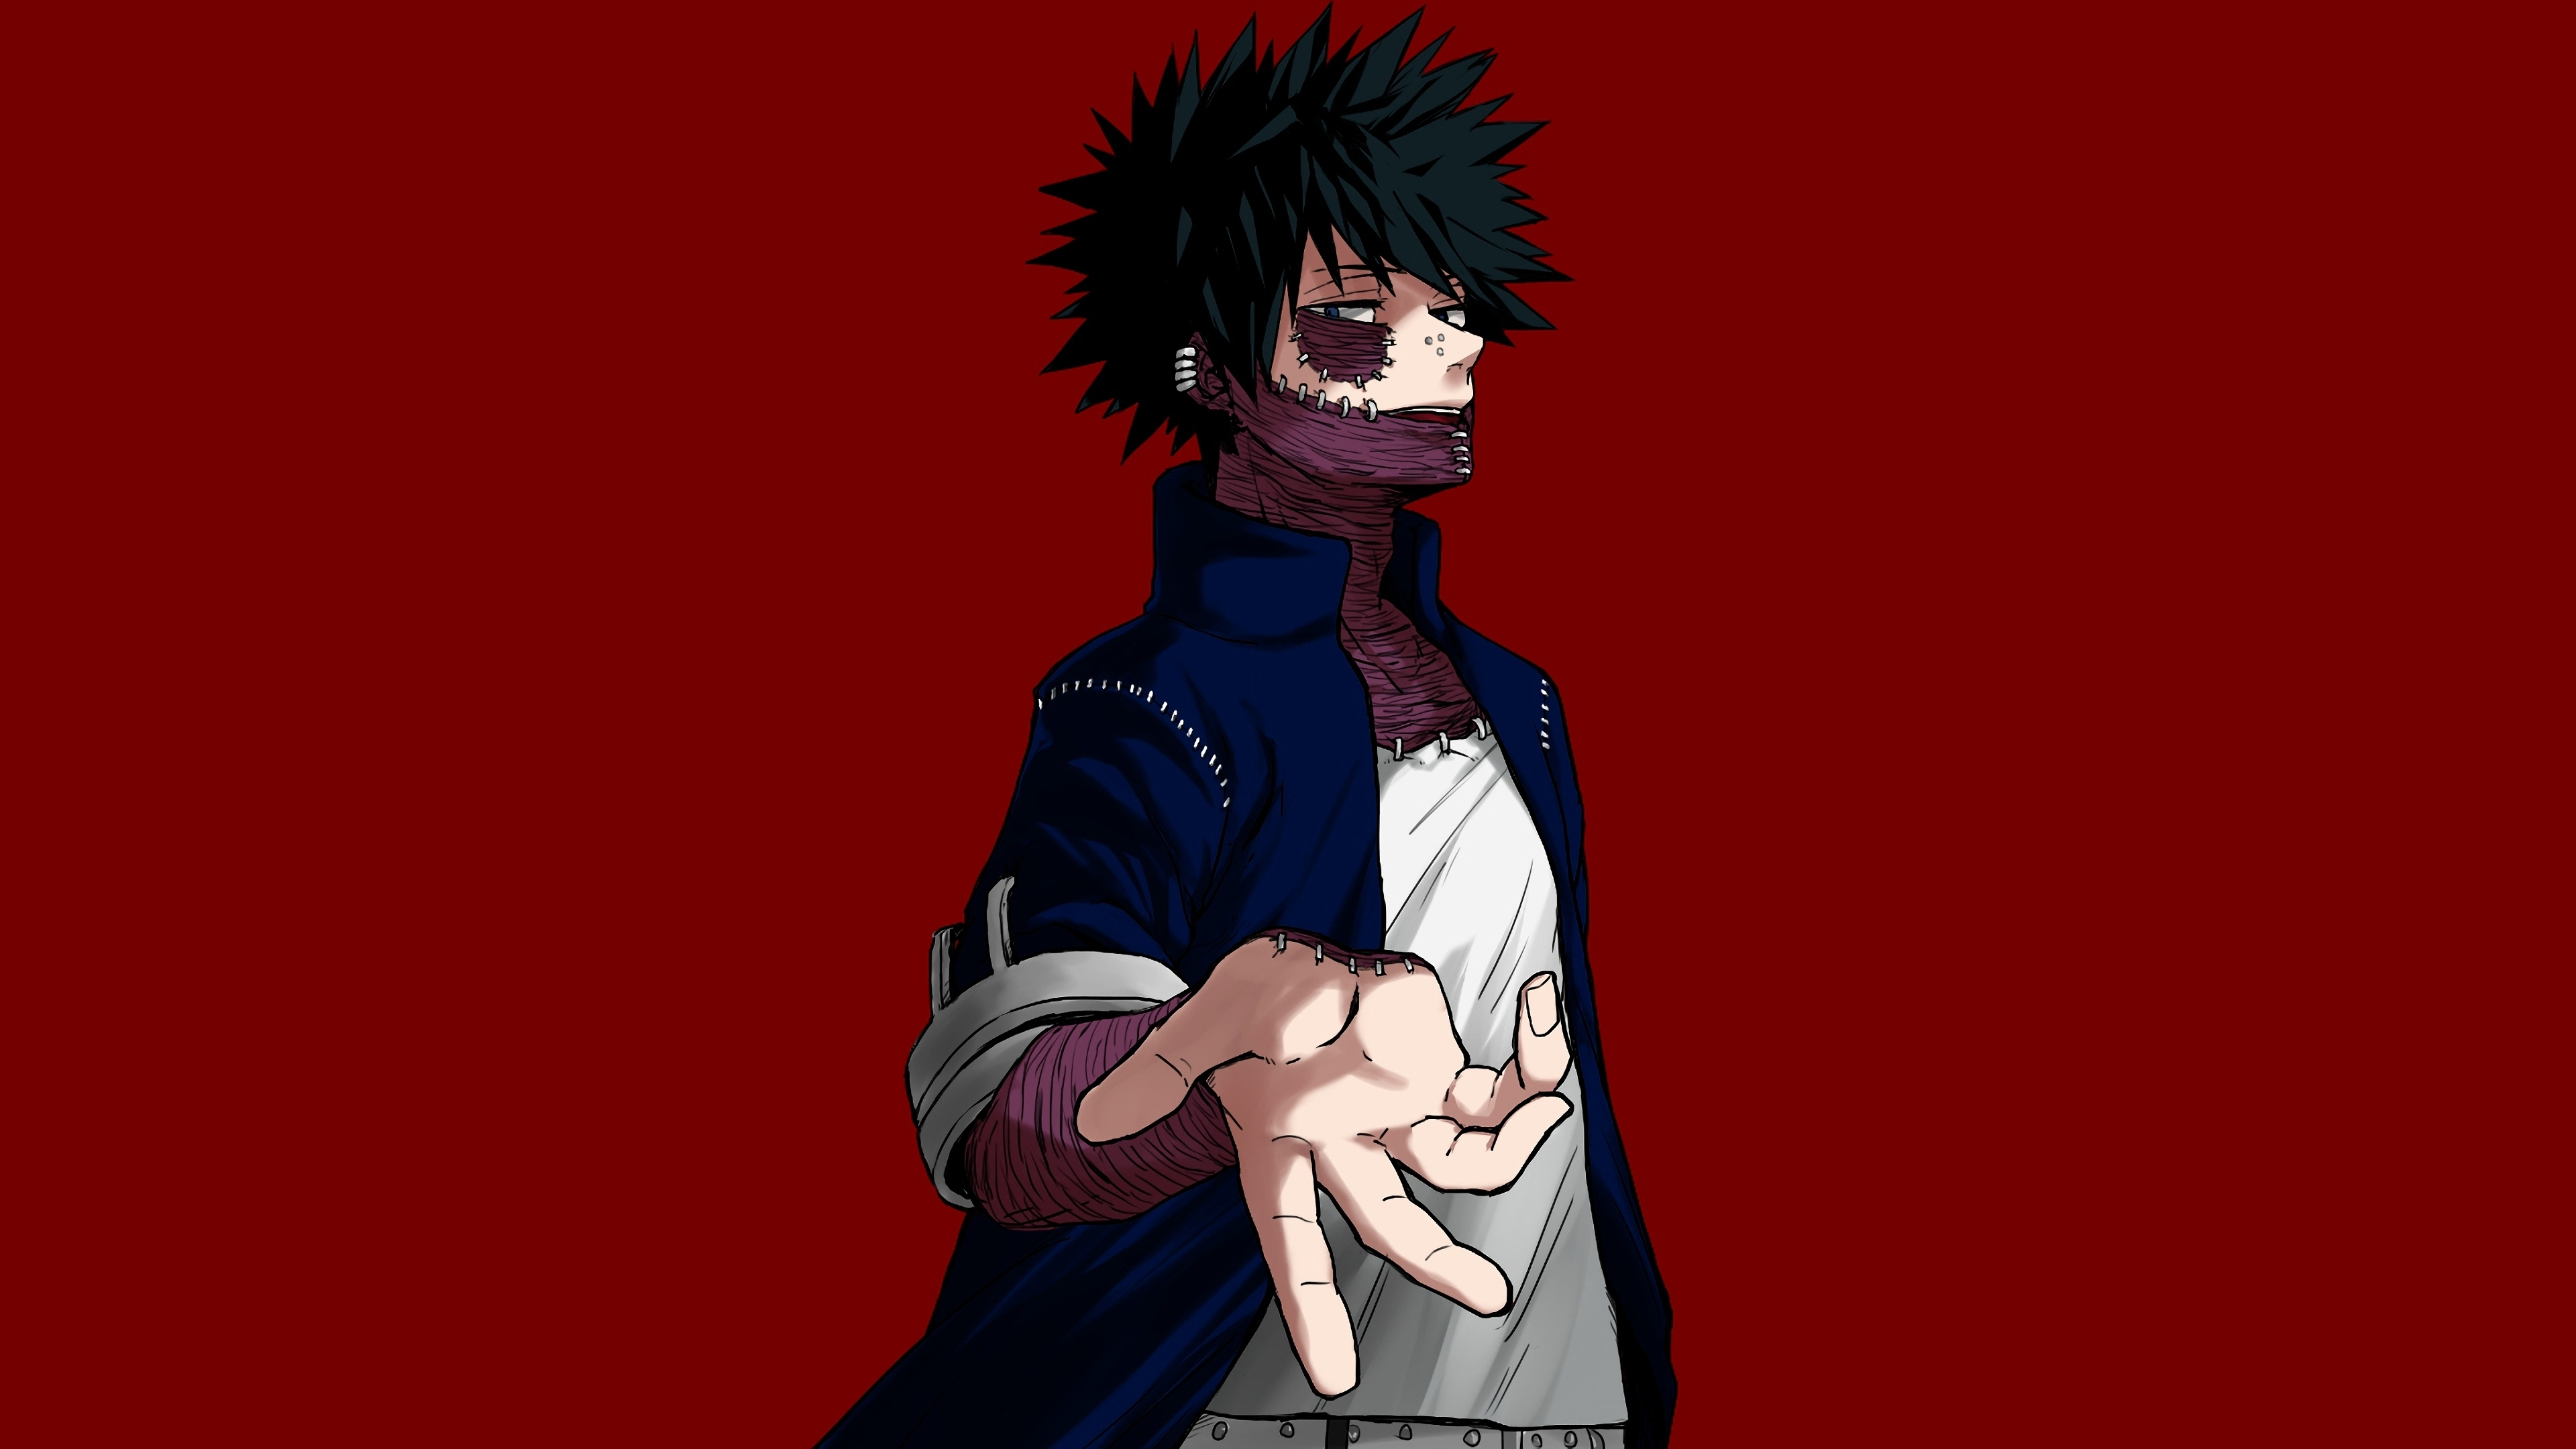 Dabi My Hero Academia Wallpaper Hd Anime 4k Wallpapers